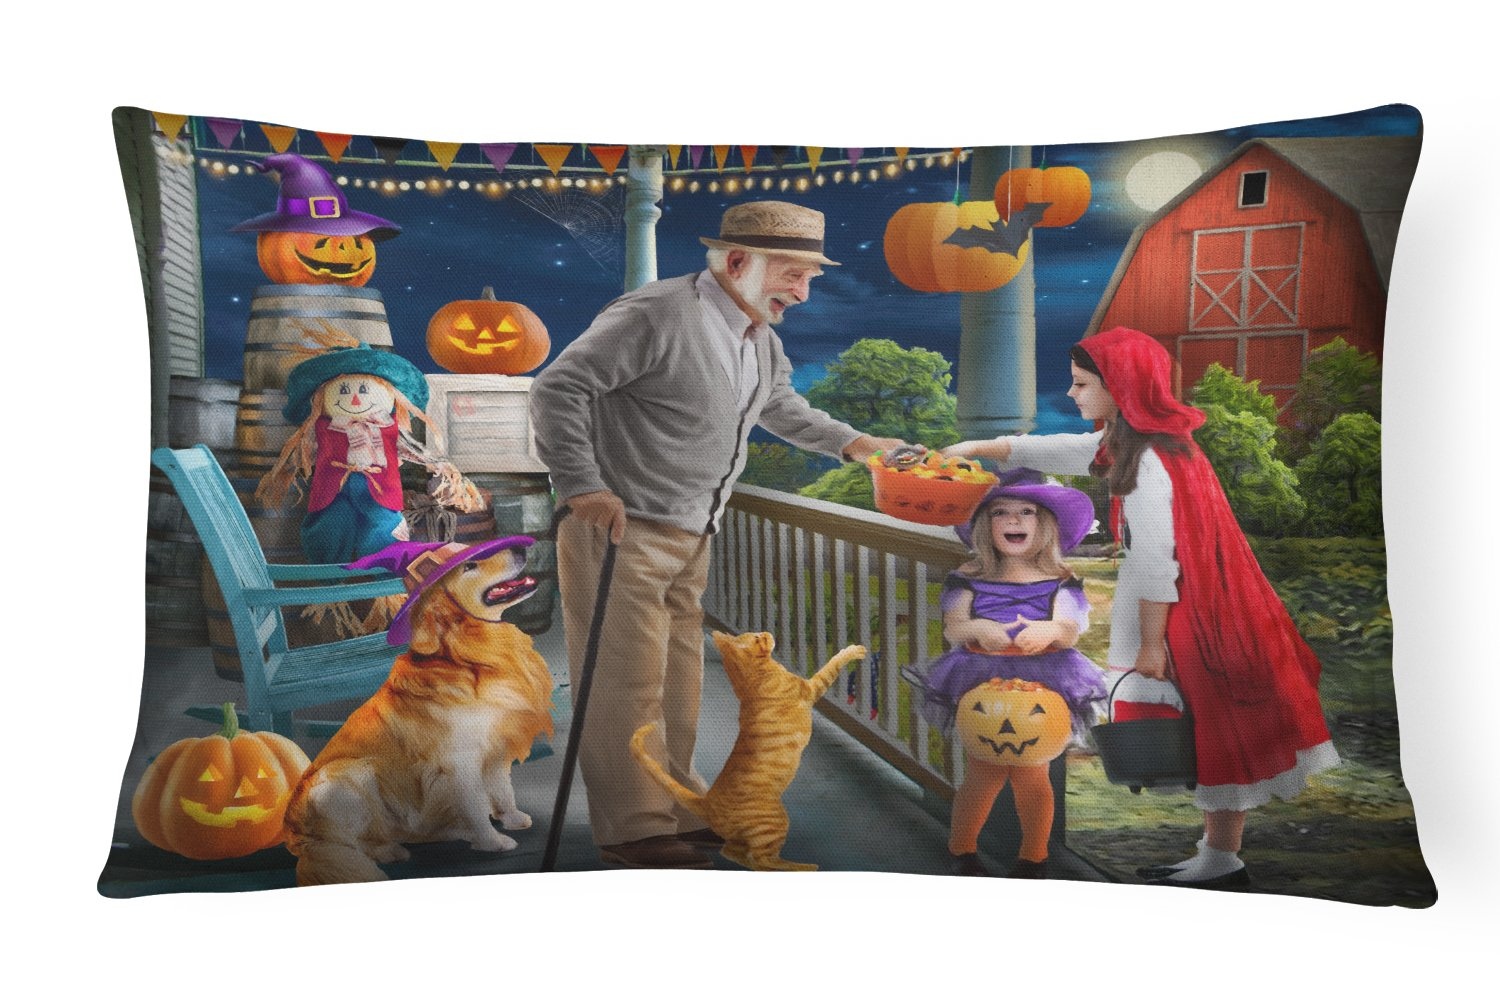 Halloween at Grandpa's Golden Retriever Canvas Fabric Decorative Pillow PTW2072PW1216 by Caroline's Treasures